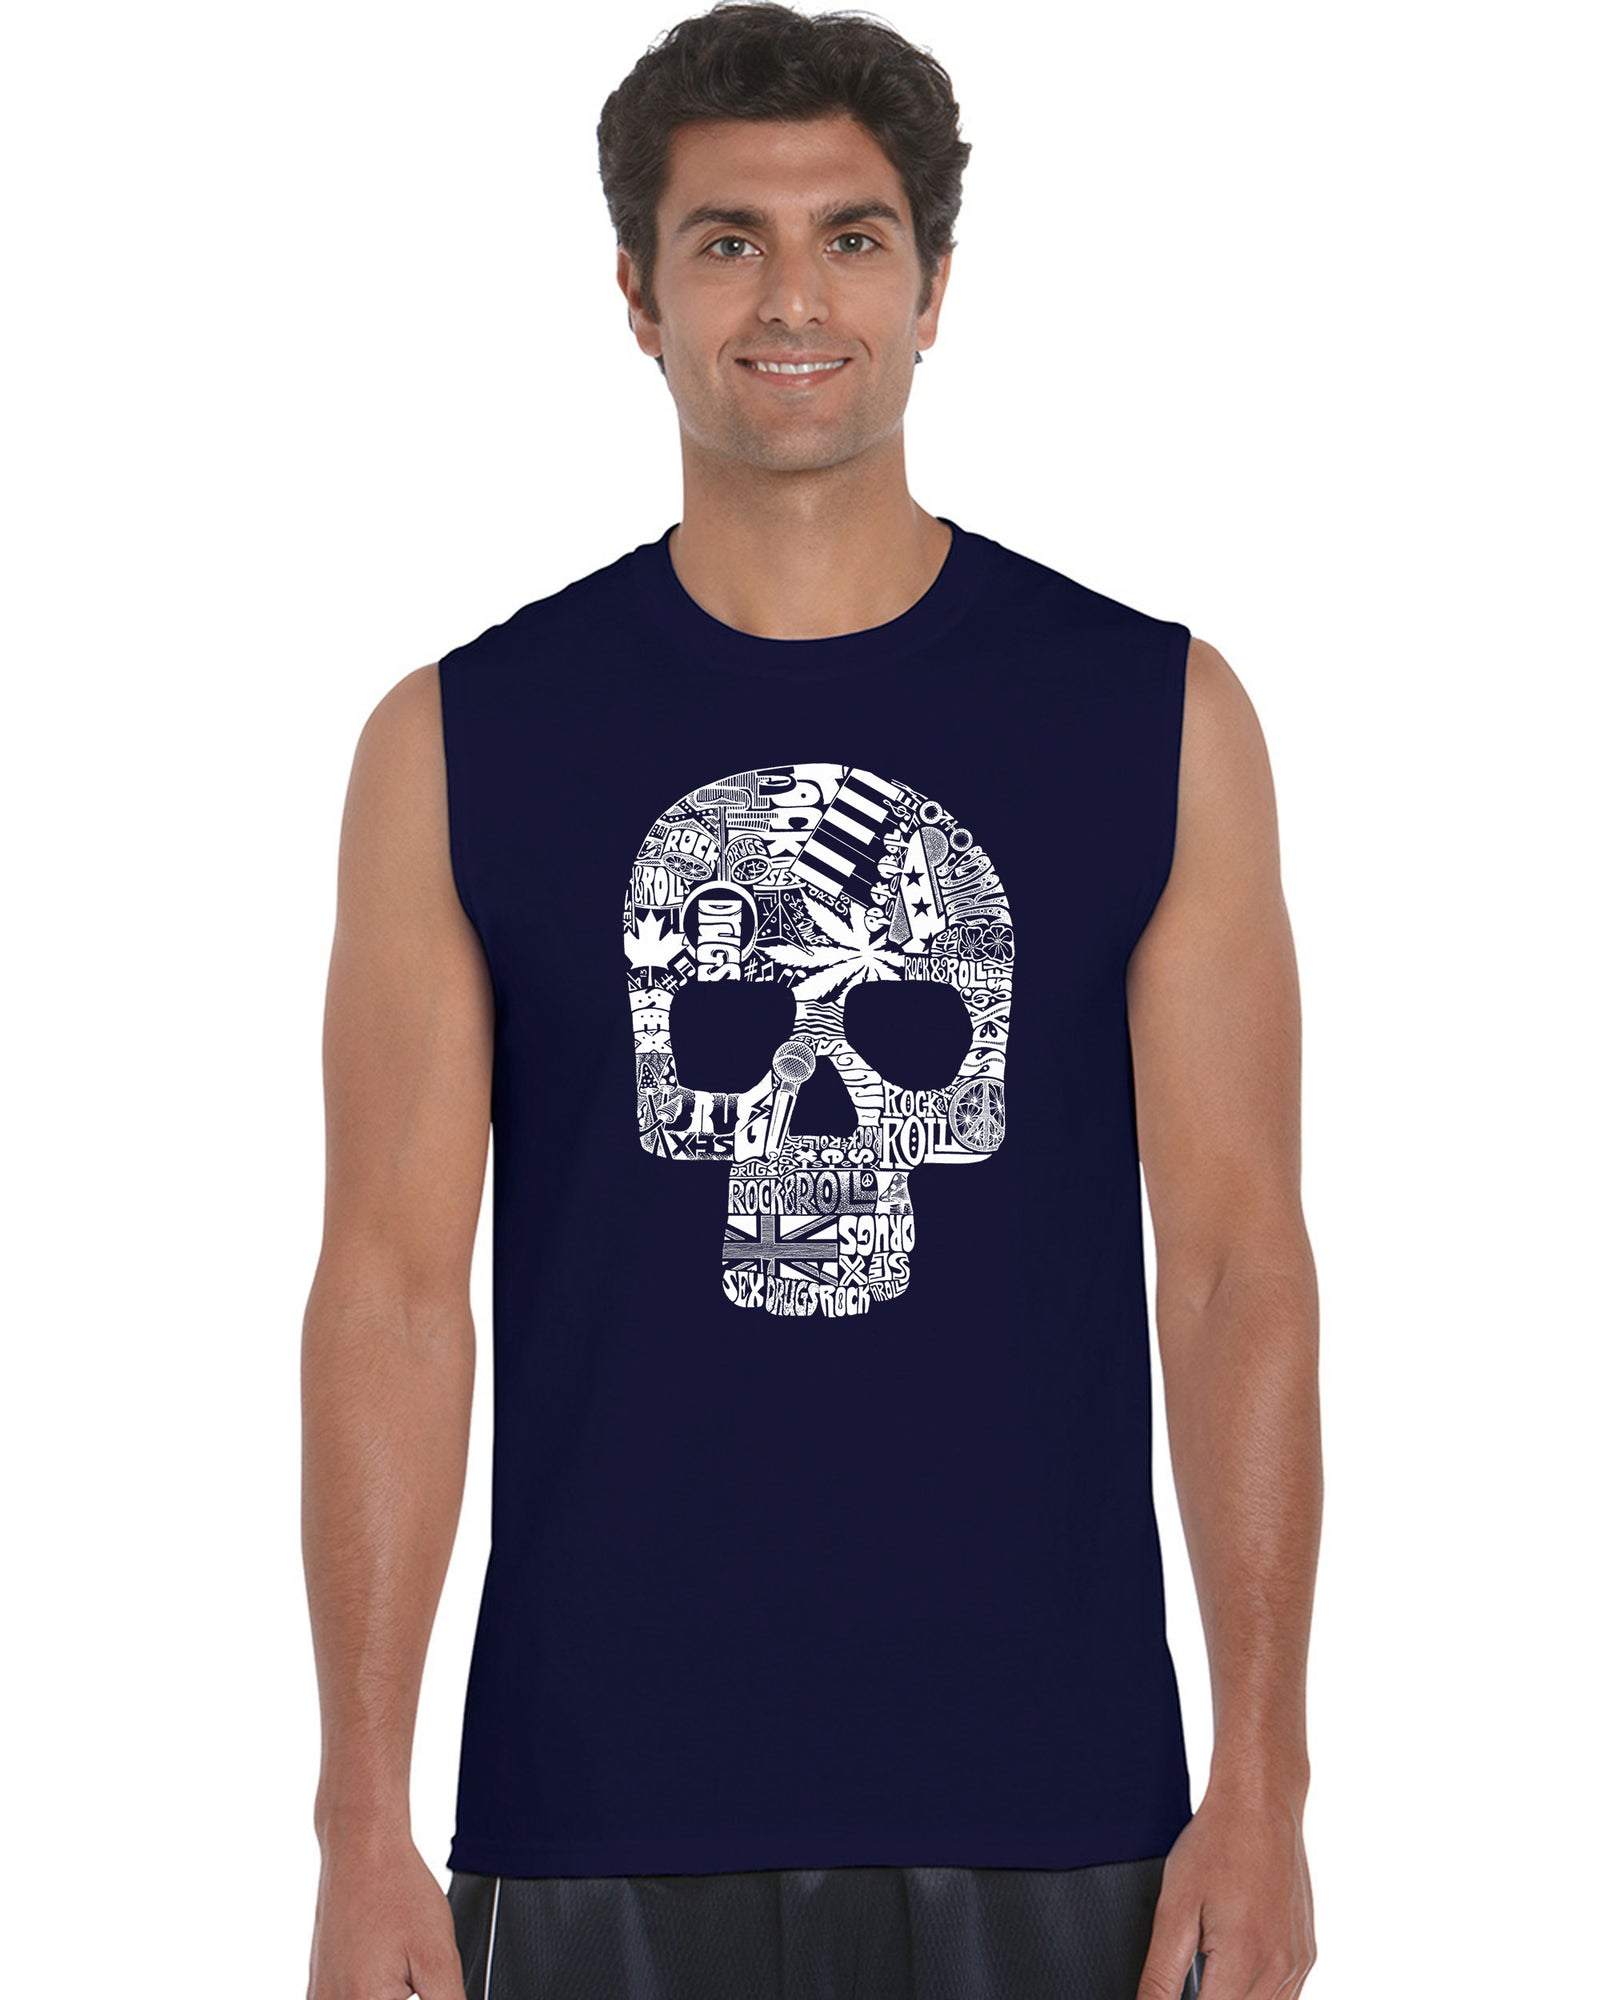 Men's Sleeveless T-shirt - Sex, Drugs, Rock & Roll